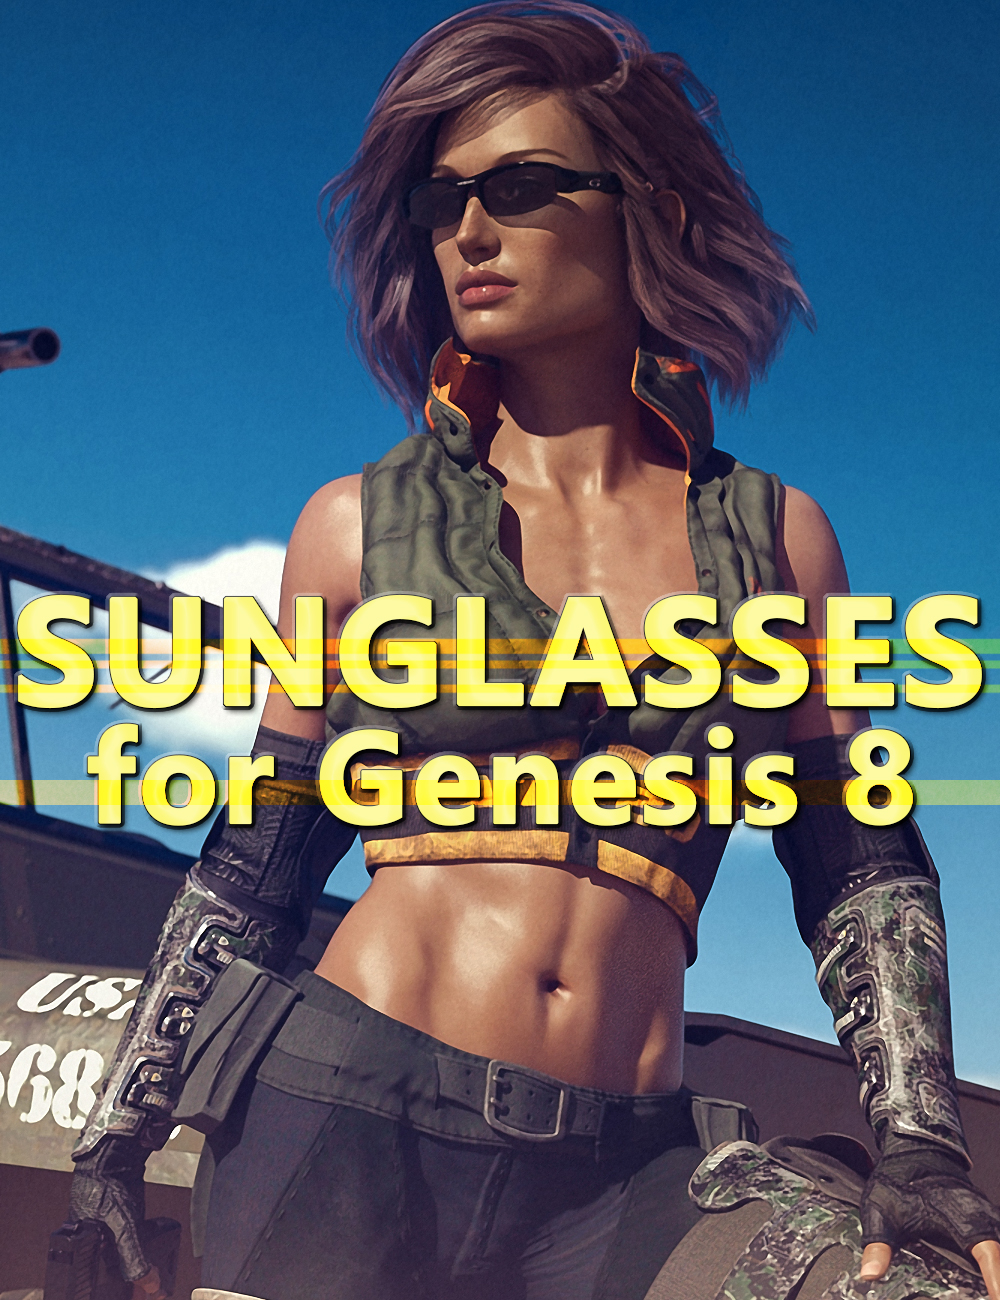 Sunglasses for Genesis 8 by: DarkEdgeDesign, 3D Models by Daz 3D